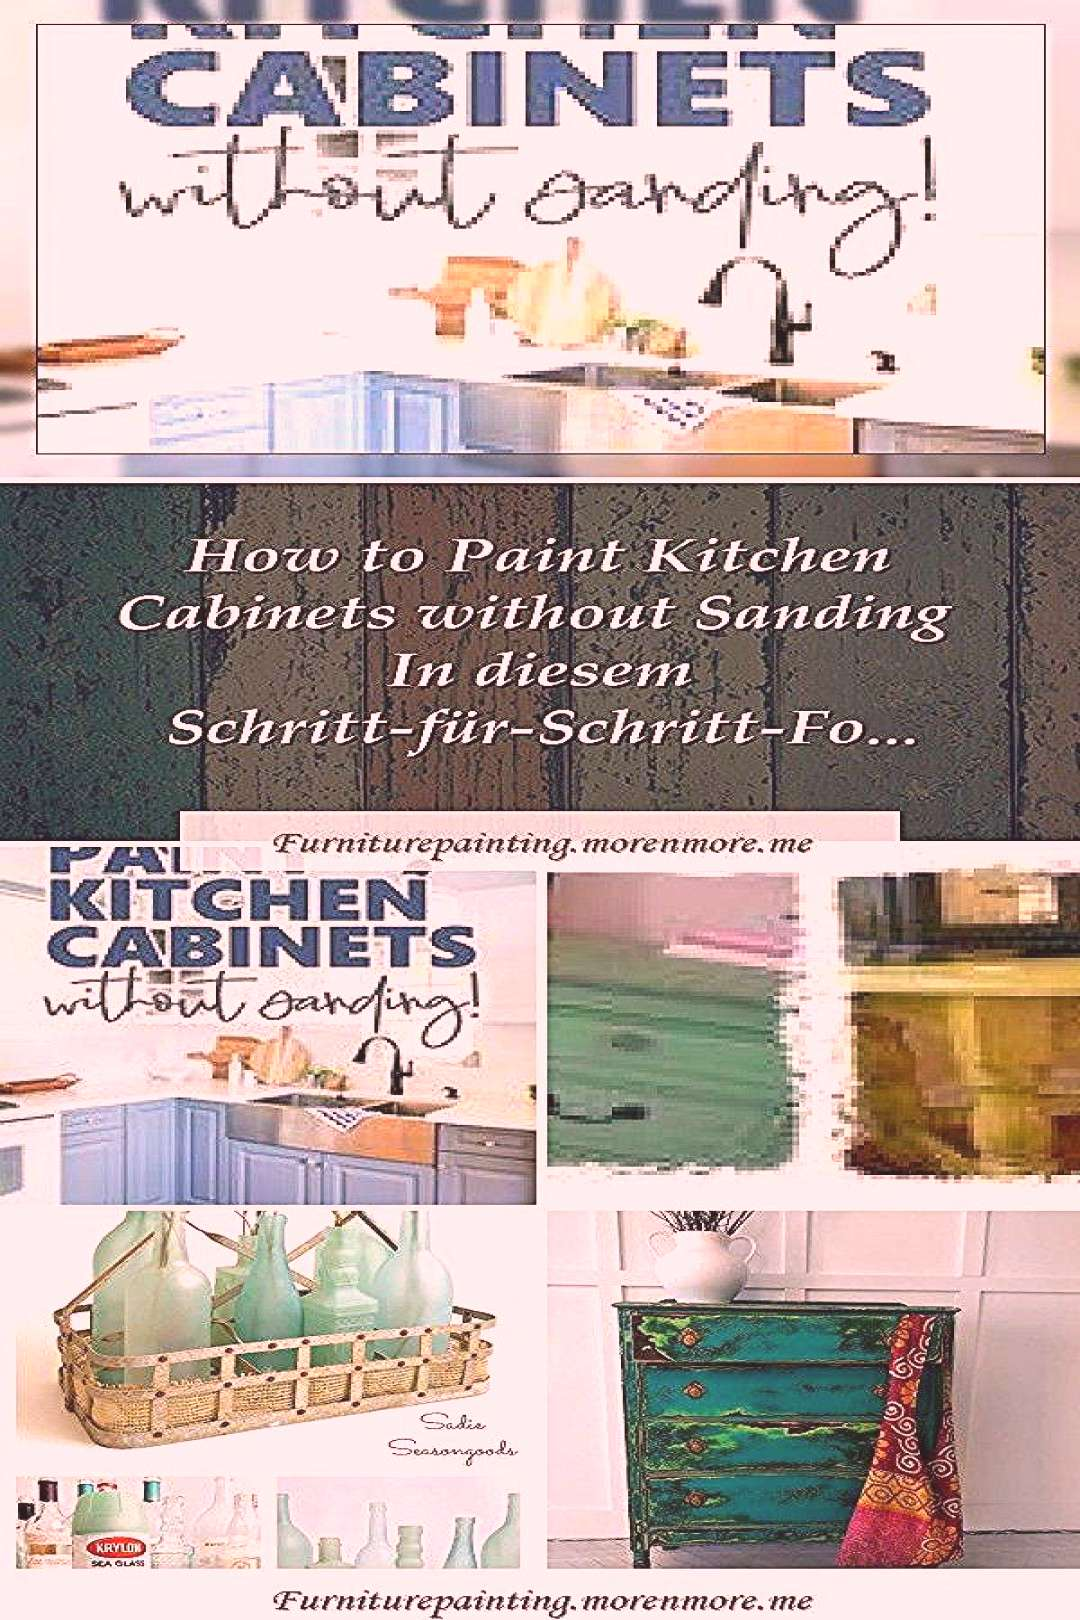 39 Ideas For Painting Furniture Without Sanding Websitefurniture ideas painti...39 Ideas For Painti